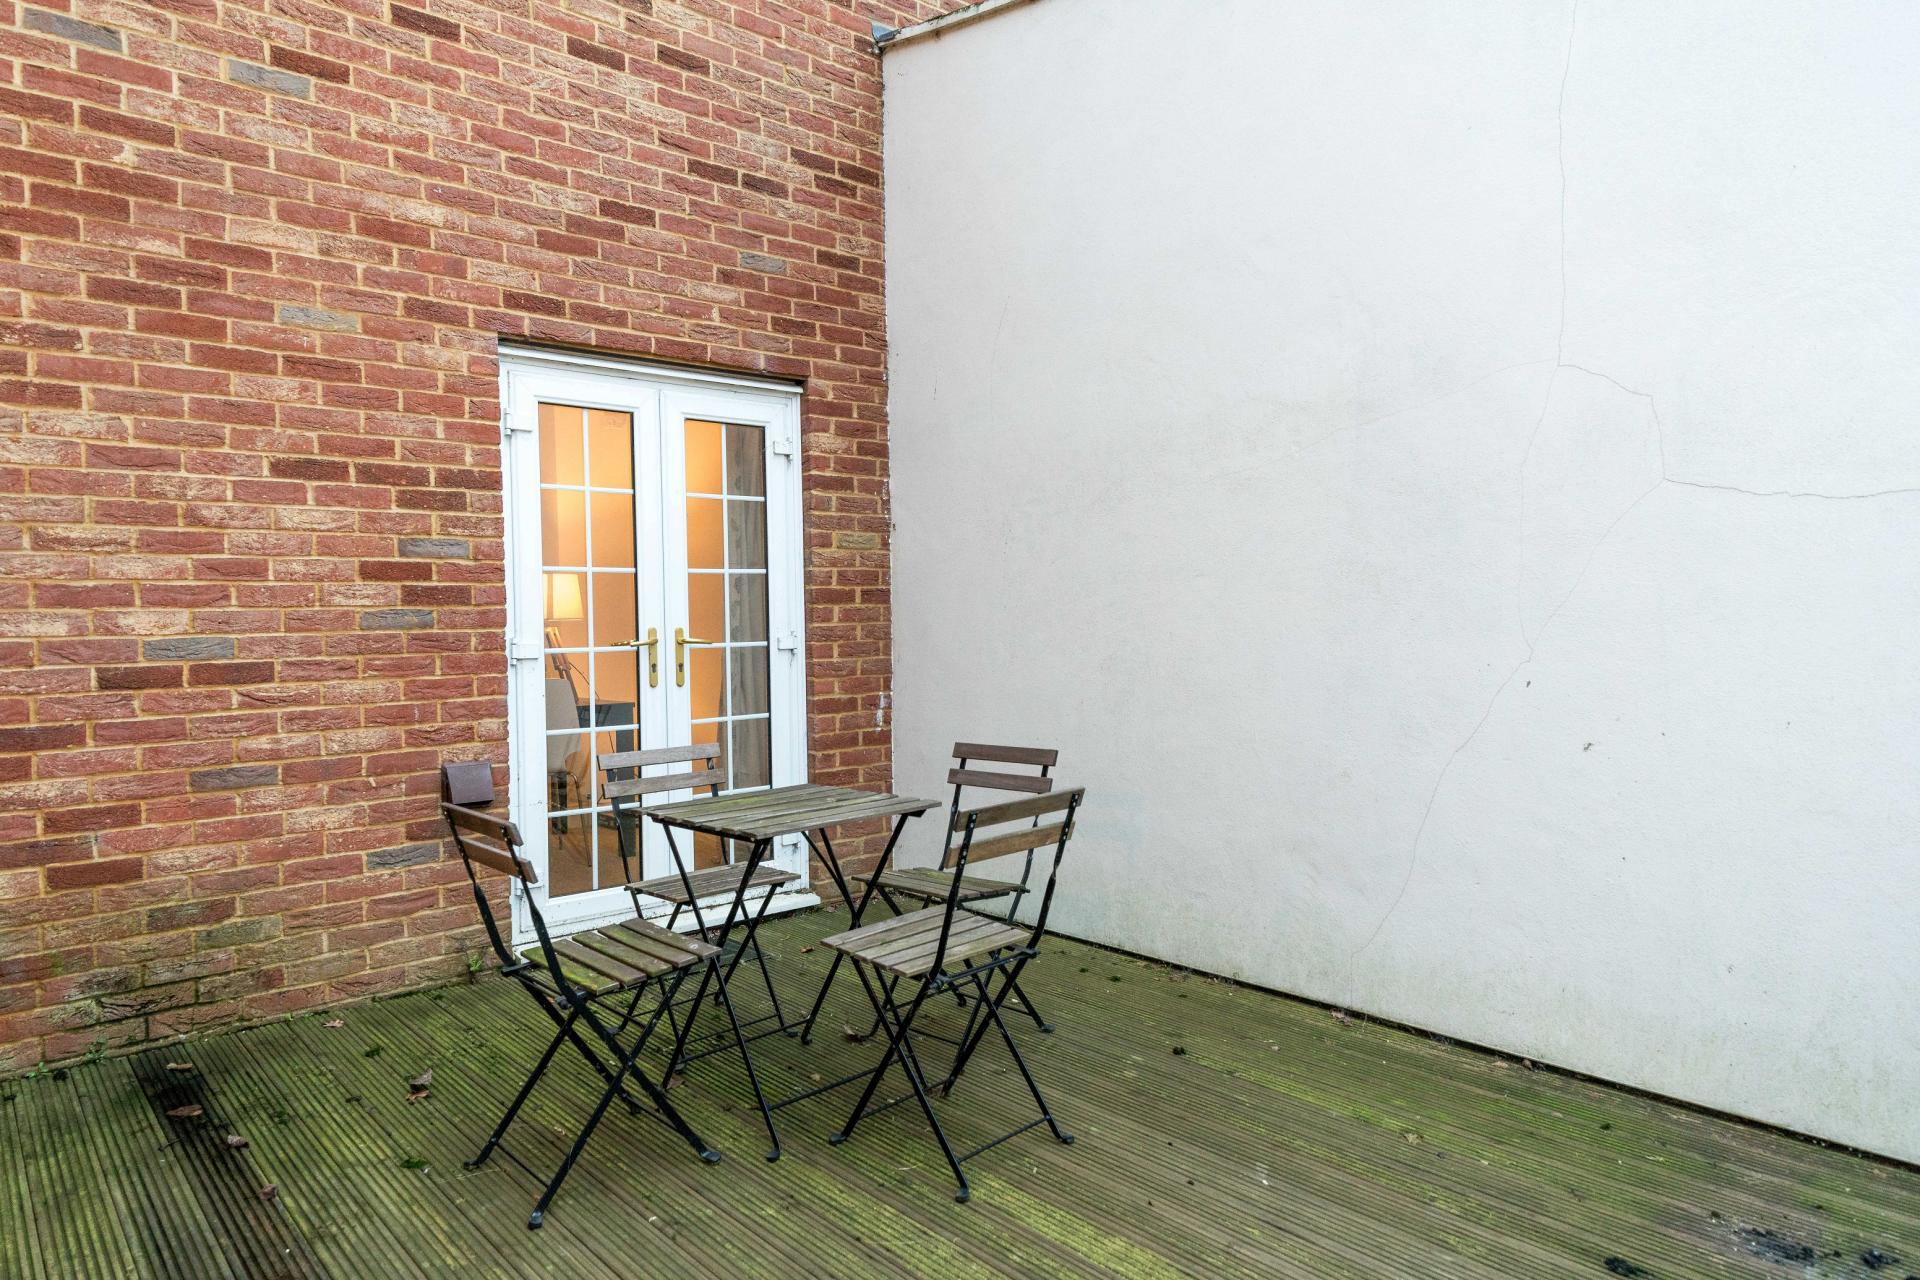 Patio at Stowfield House